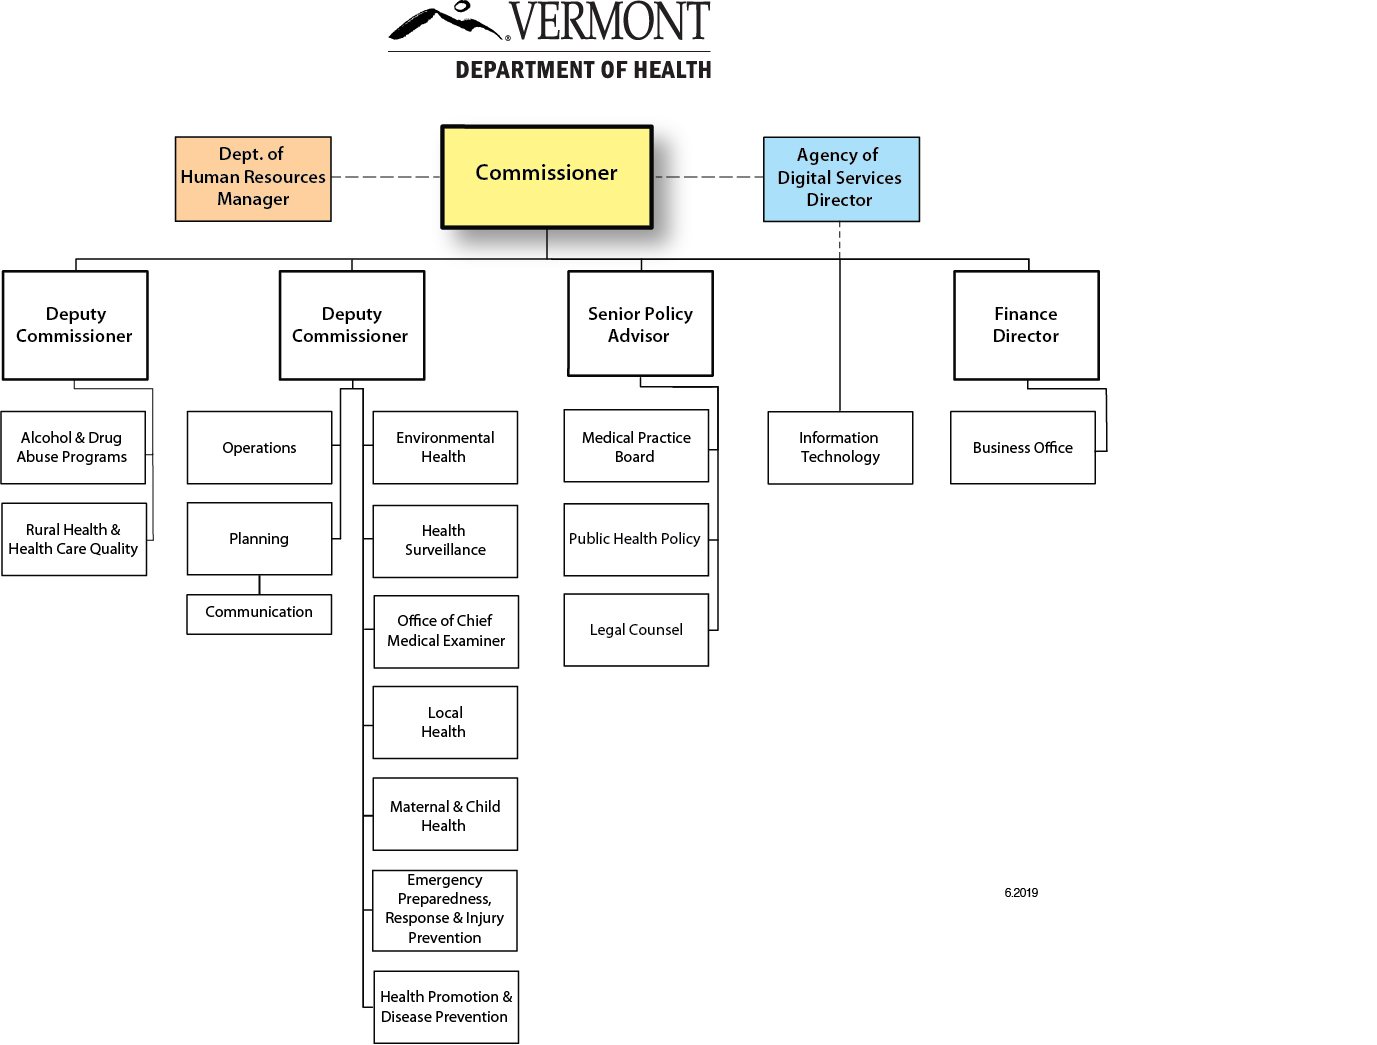 Organizational Charts | Vermont Department of Health